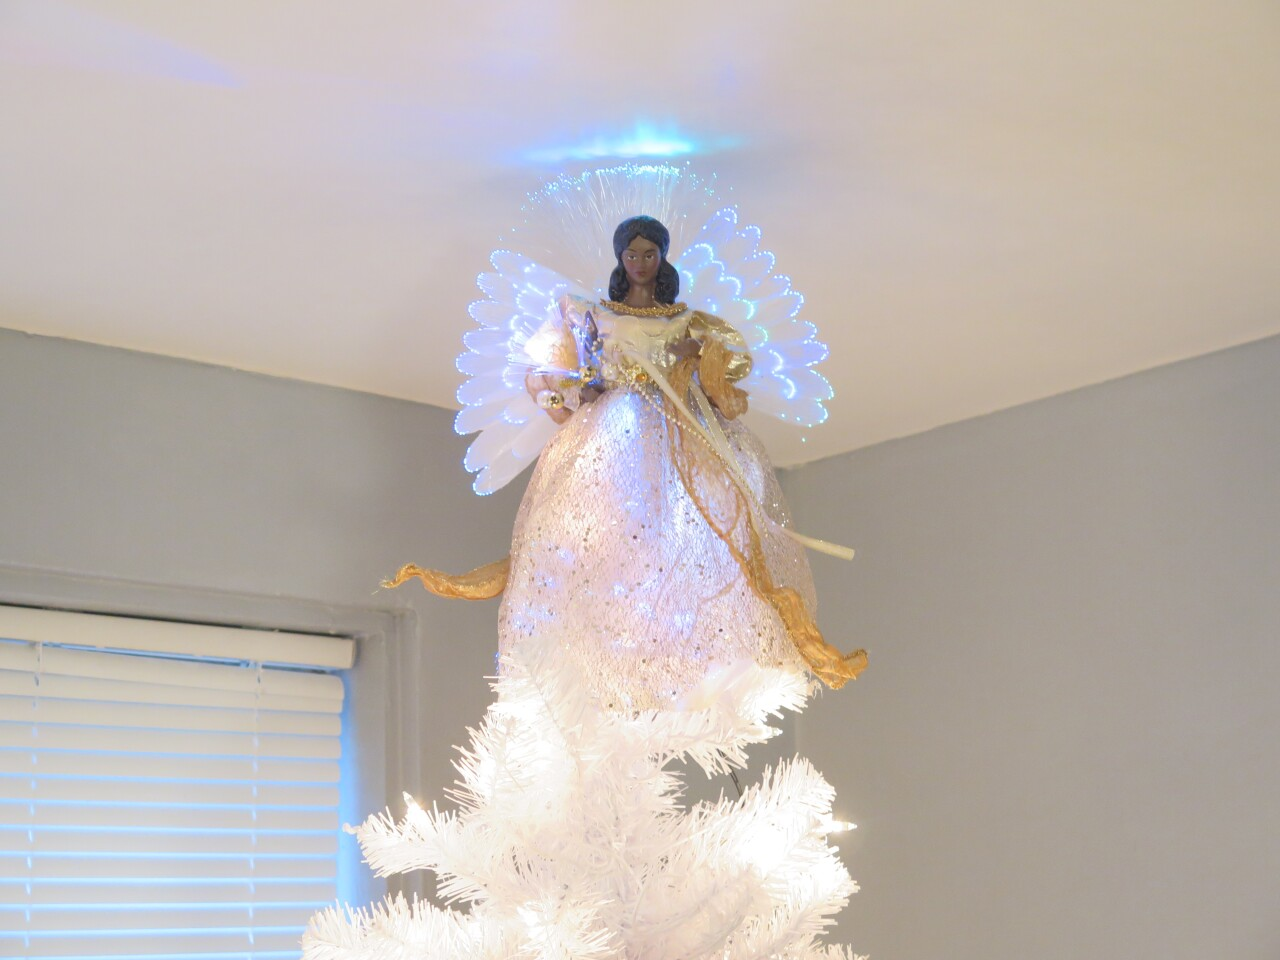 Angel_on_top_of_Davis_family_tree.JPG